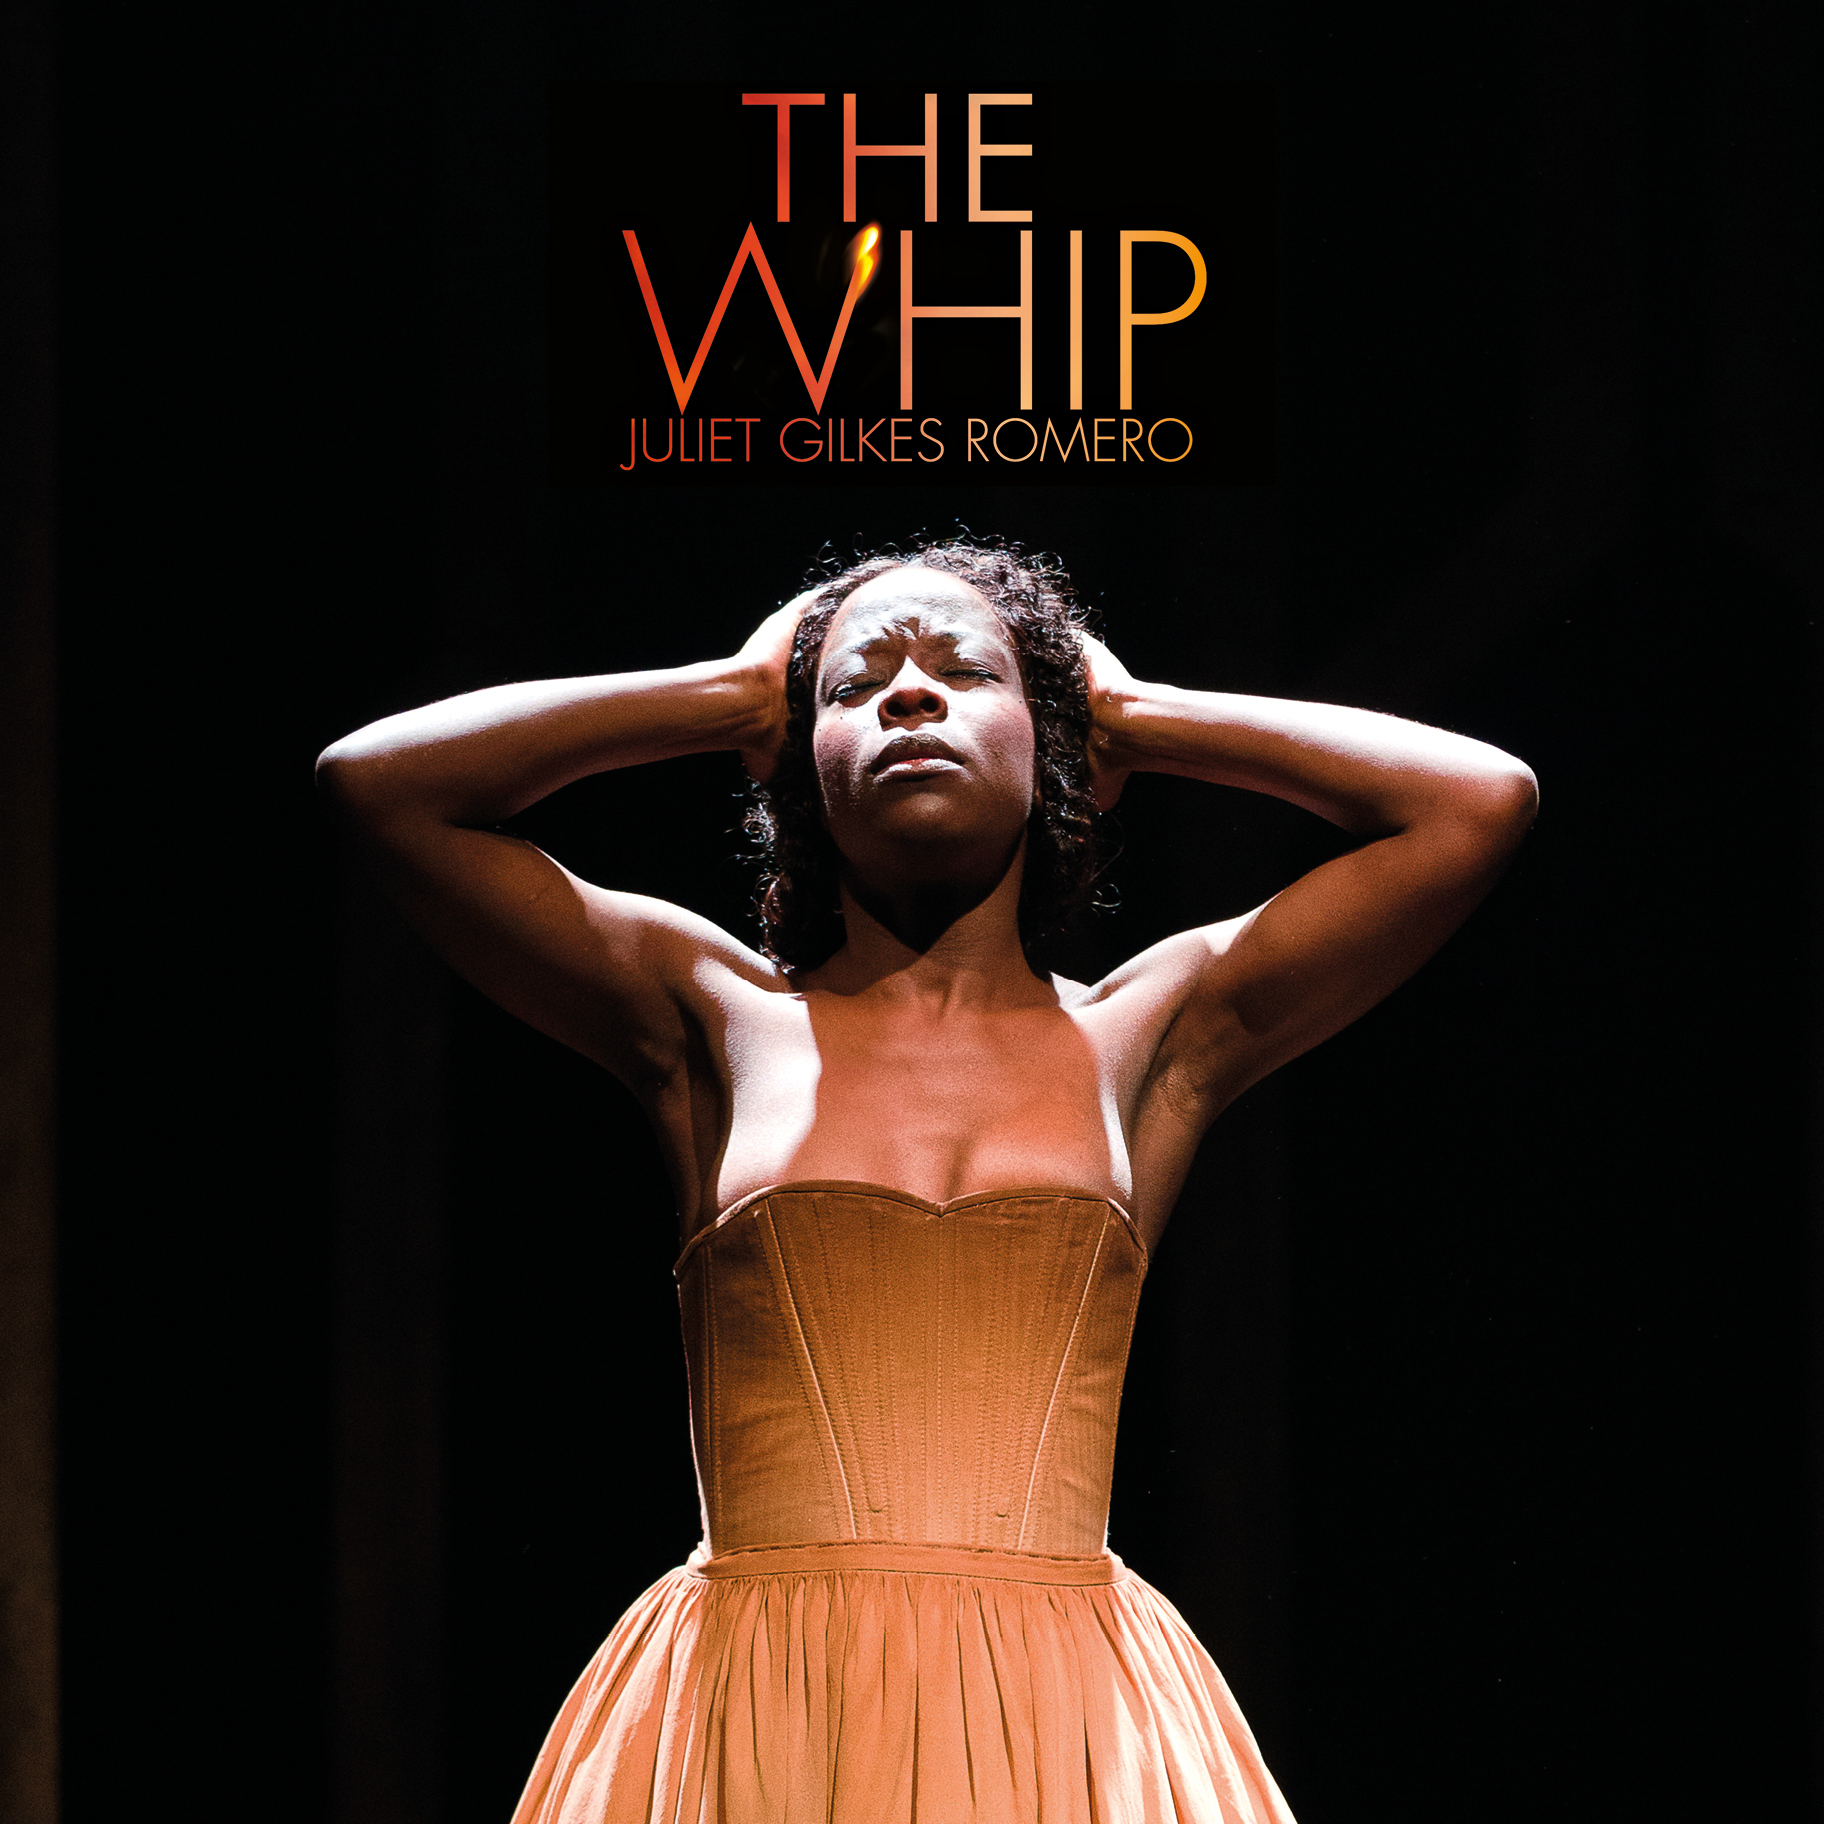 The Whip, written by Juliet Gilkes Romero